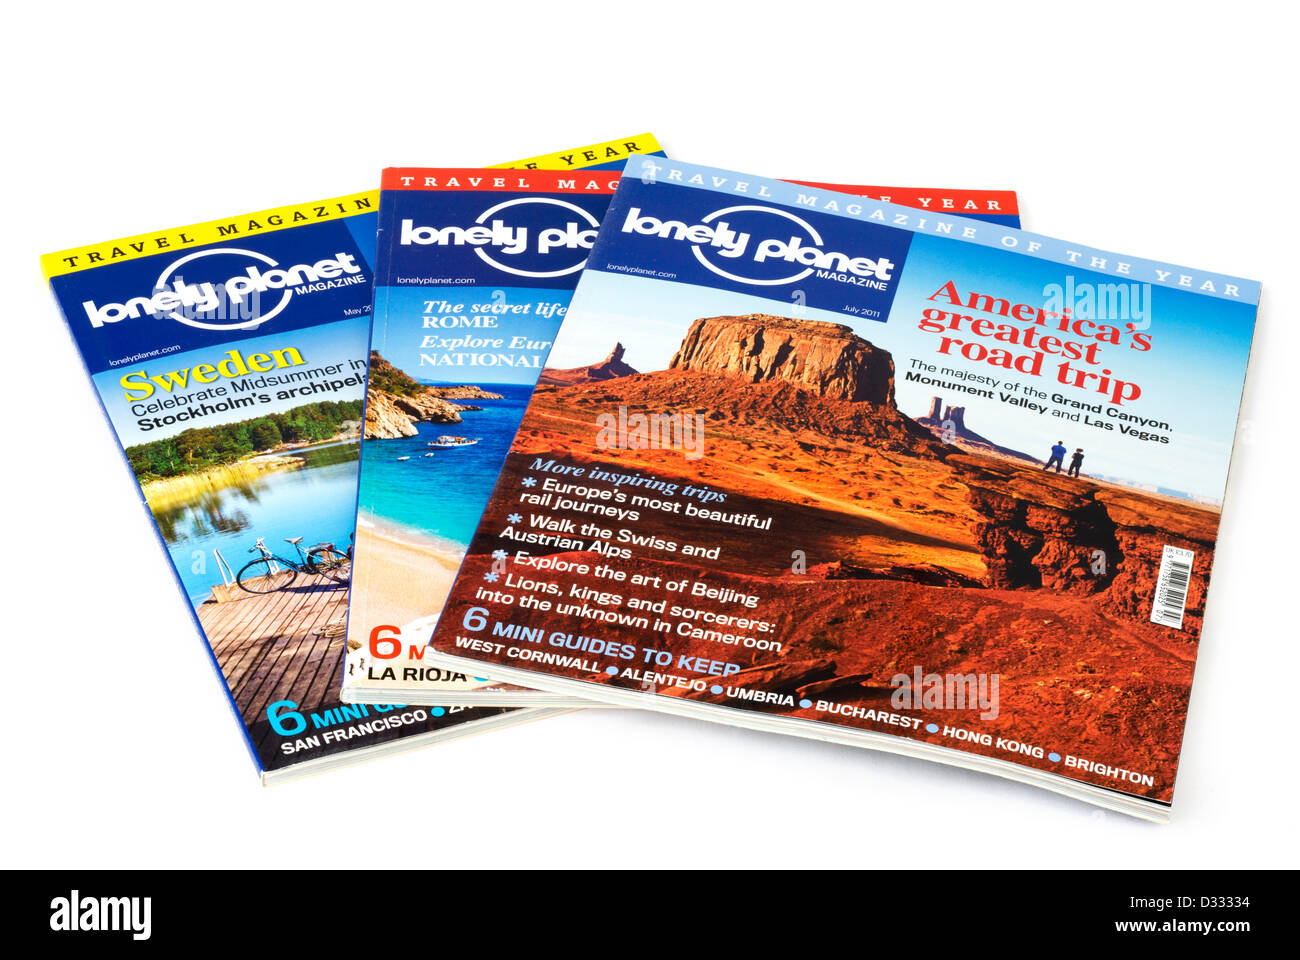 Lonely Planet travel magazines - Stock Image